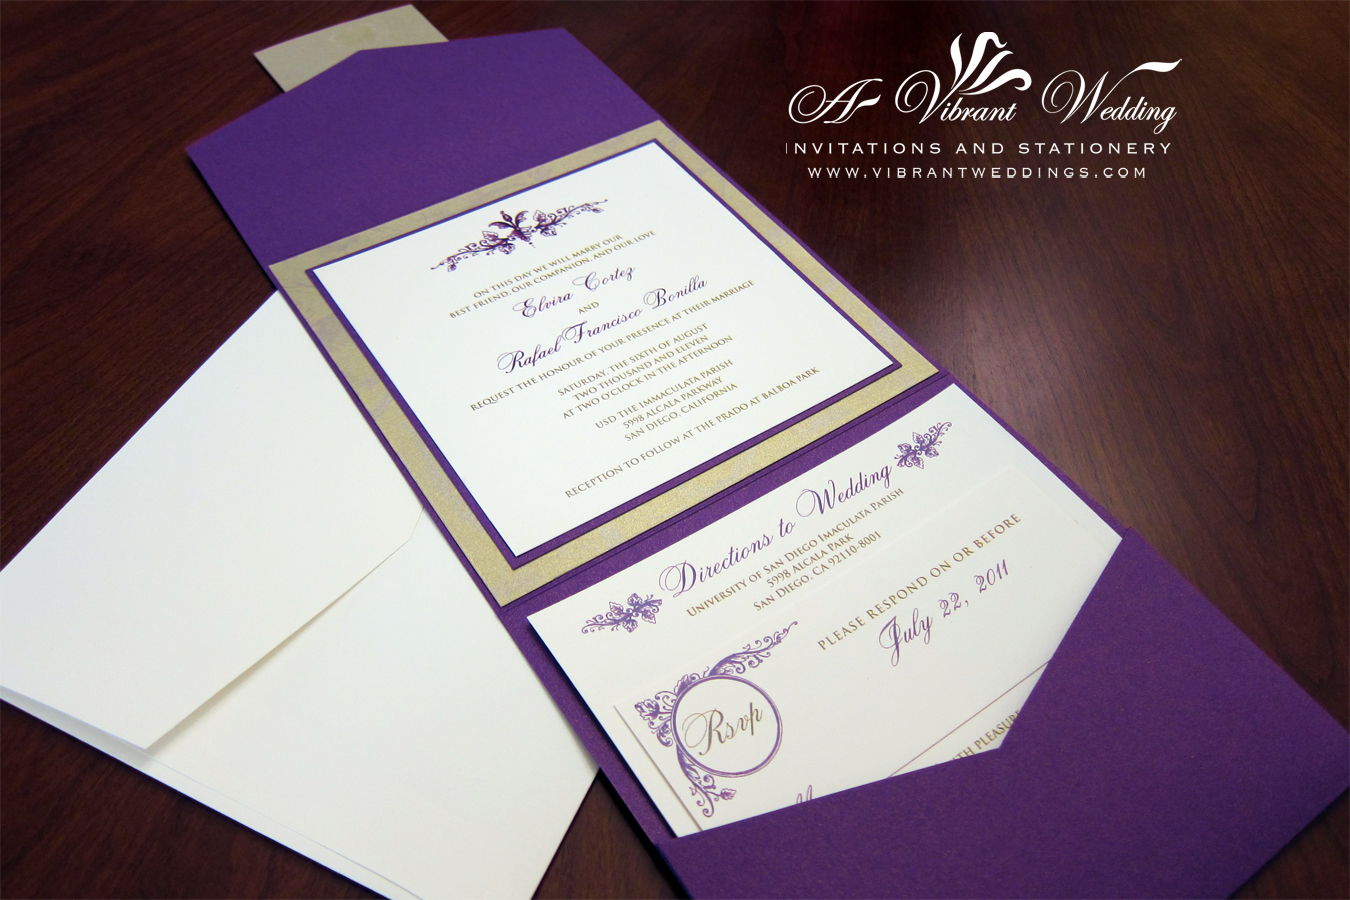 Purple Wedding Invitations | Wedding invitations Ideas & baby shower ...